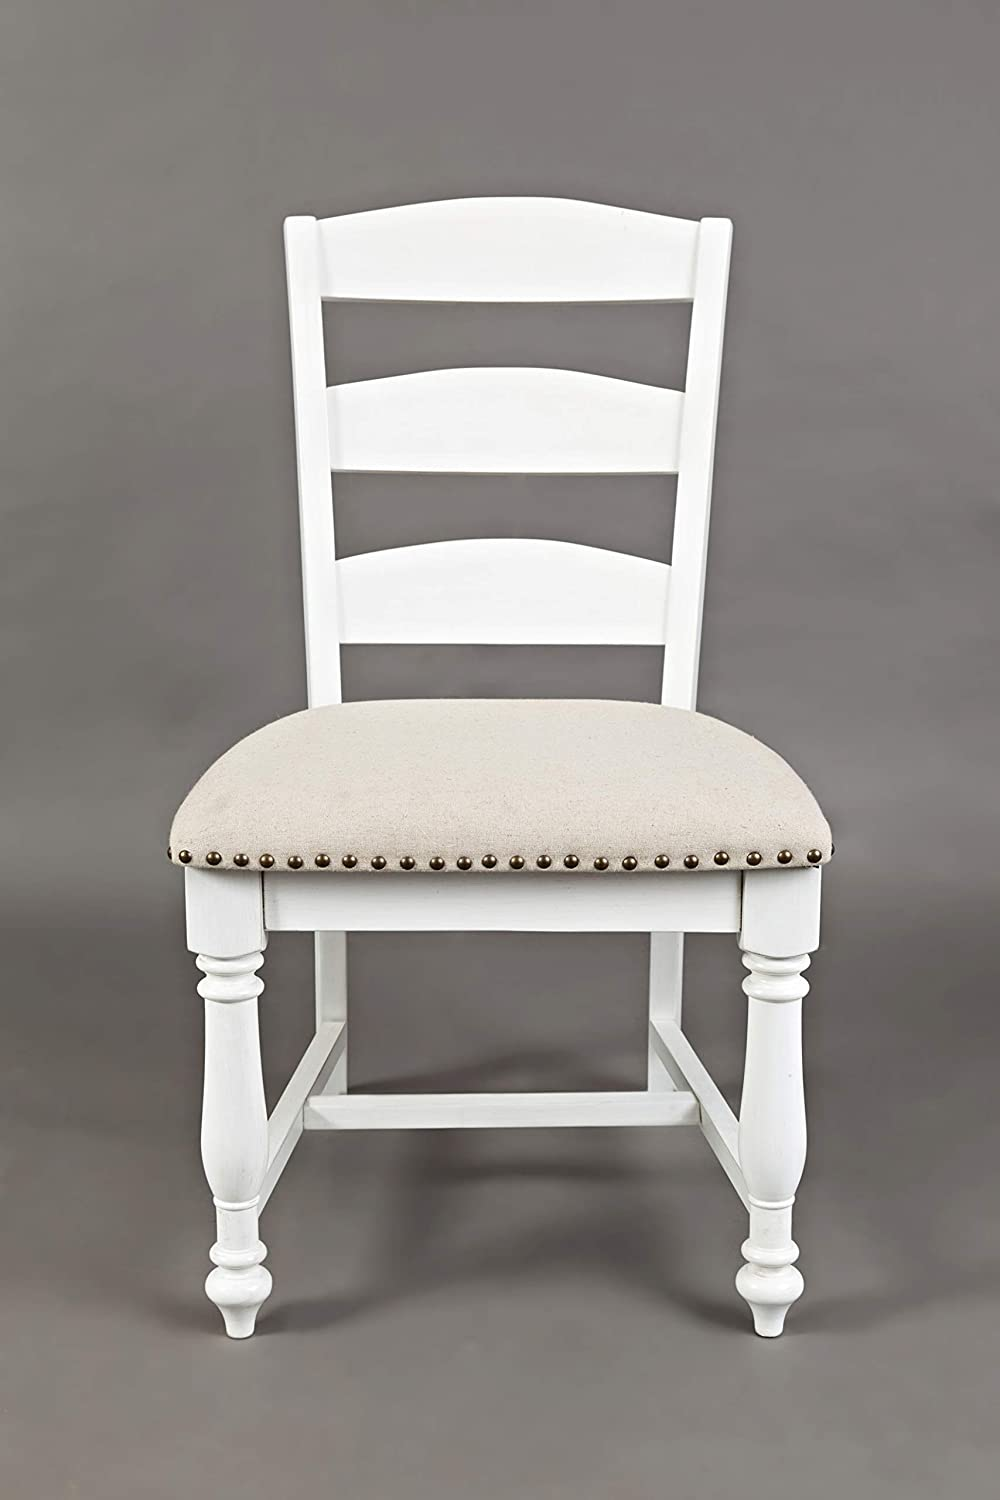 Benzara BM184008 Wooden Dining Chair with Padded Seat, Set of Two, White